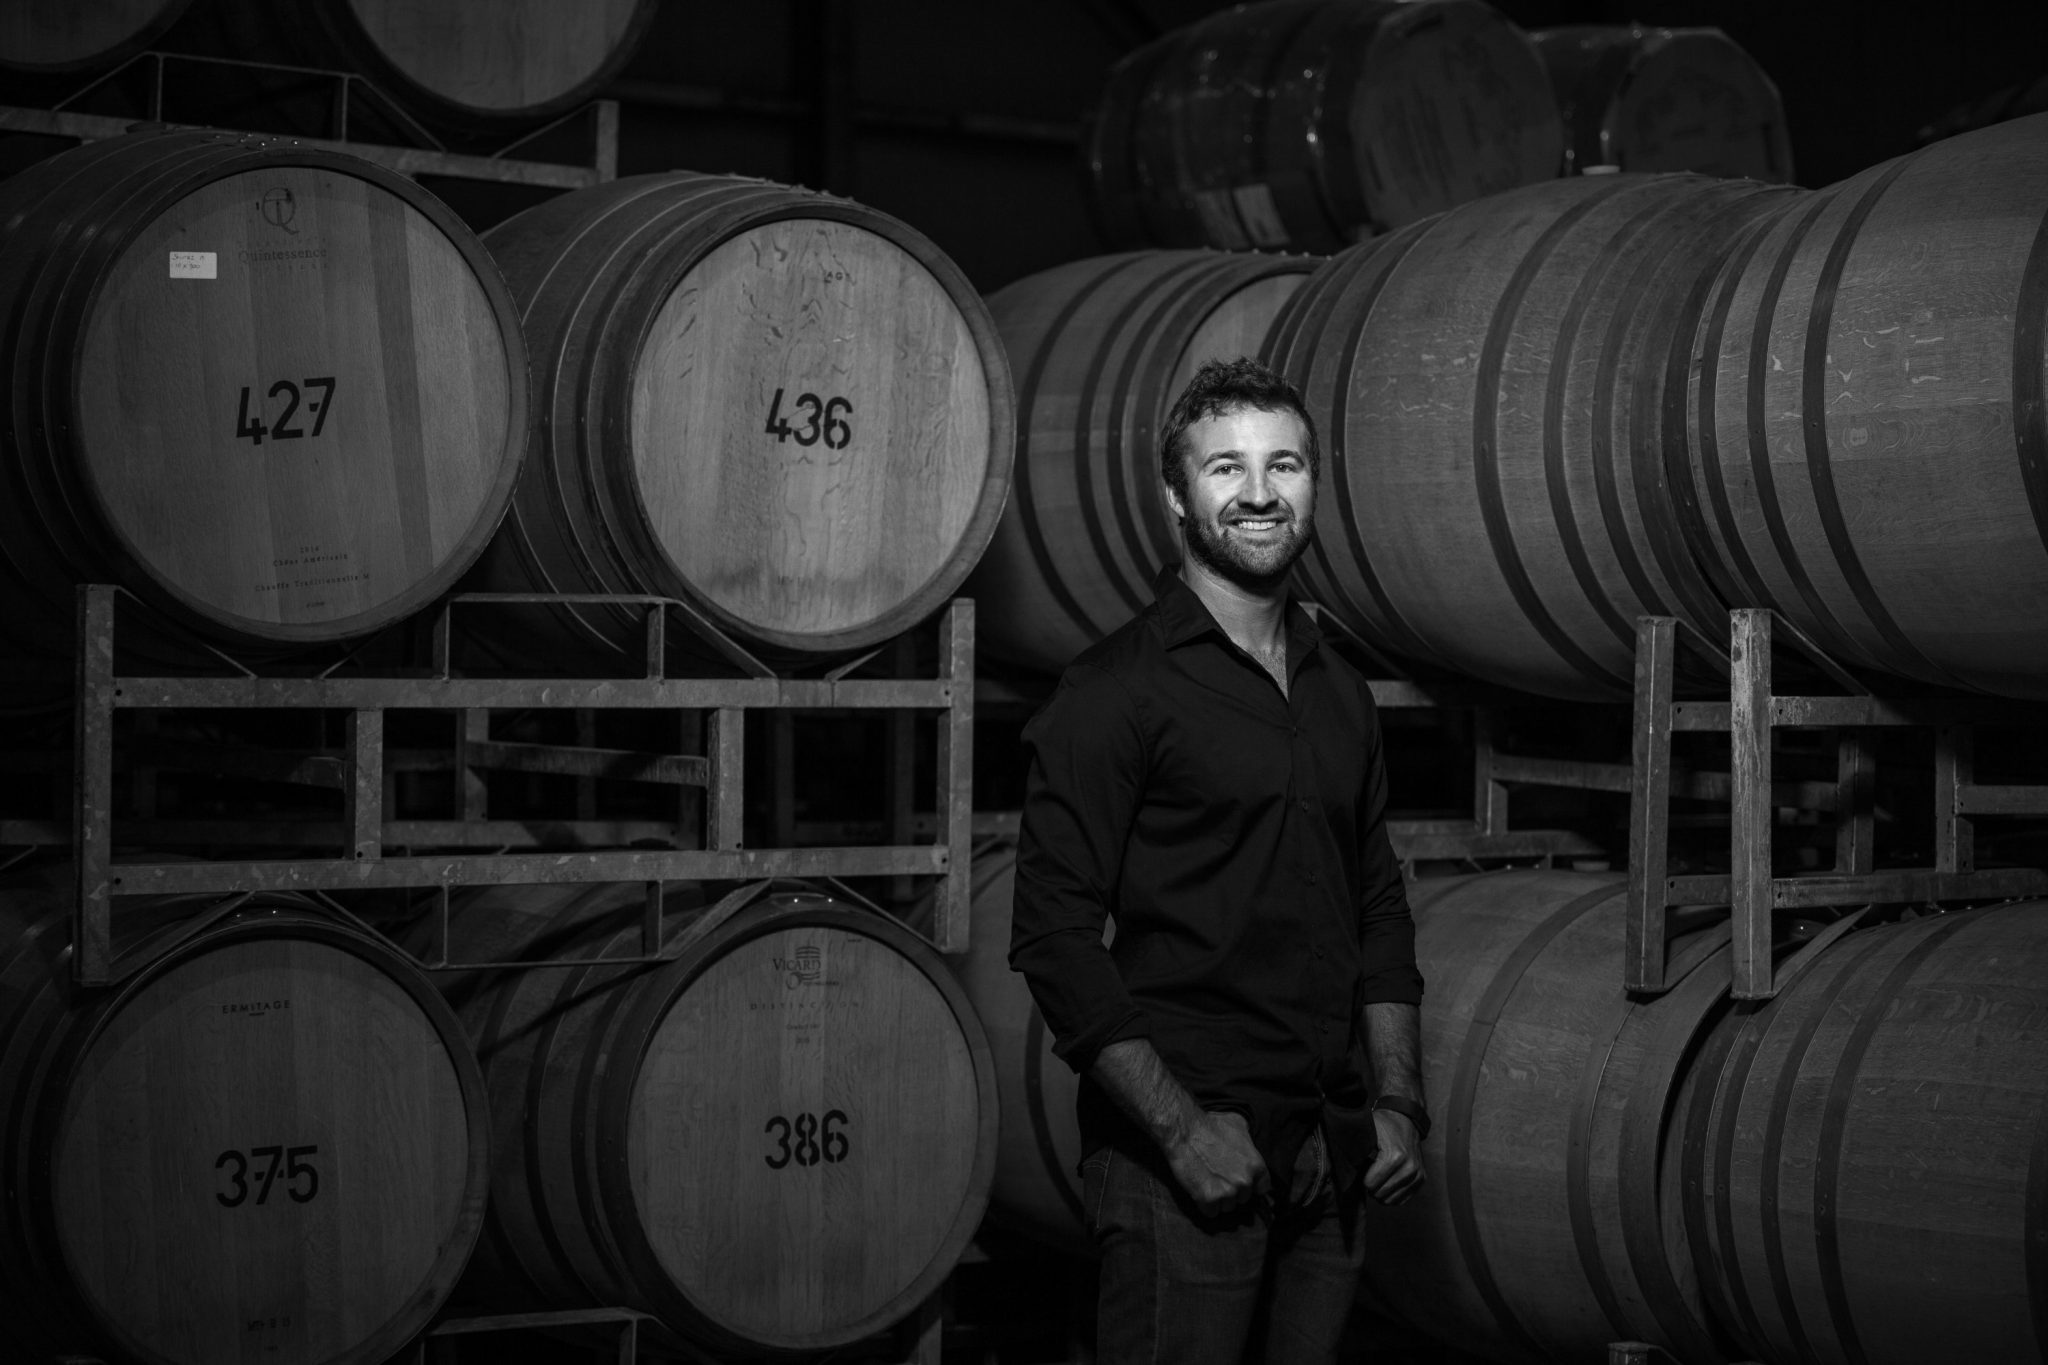 winemaker james ochse stellenbosch hills wines sonia cabano blog eatdrinkcapetown